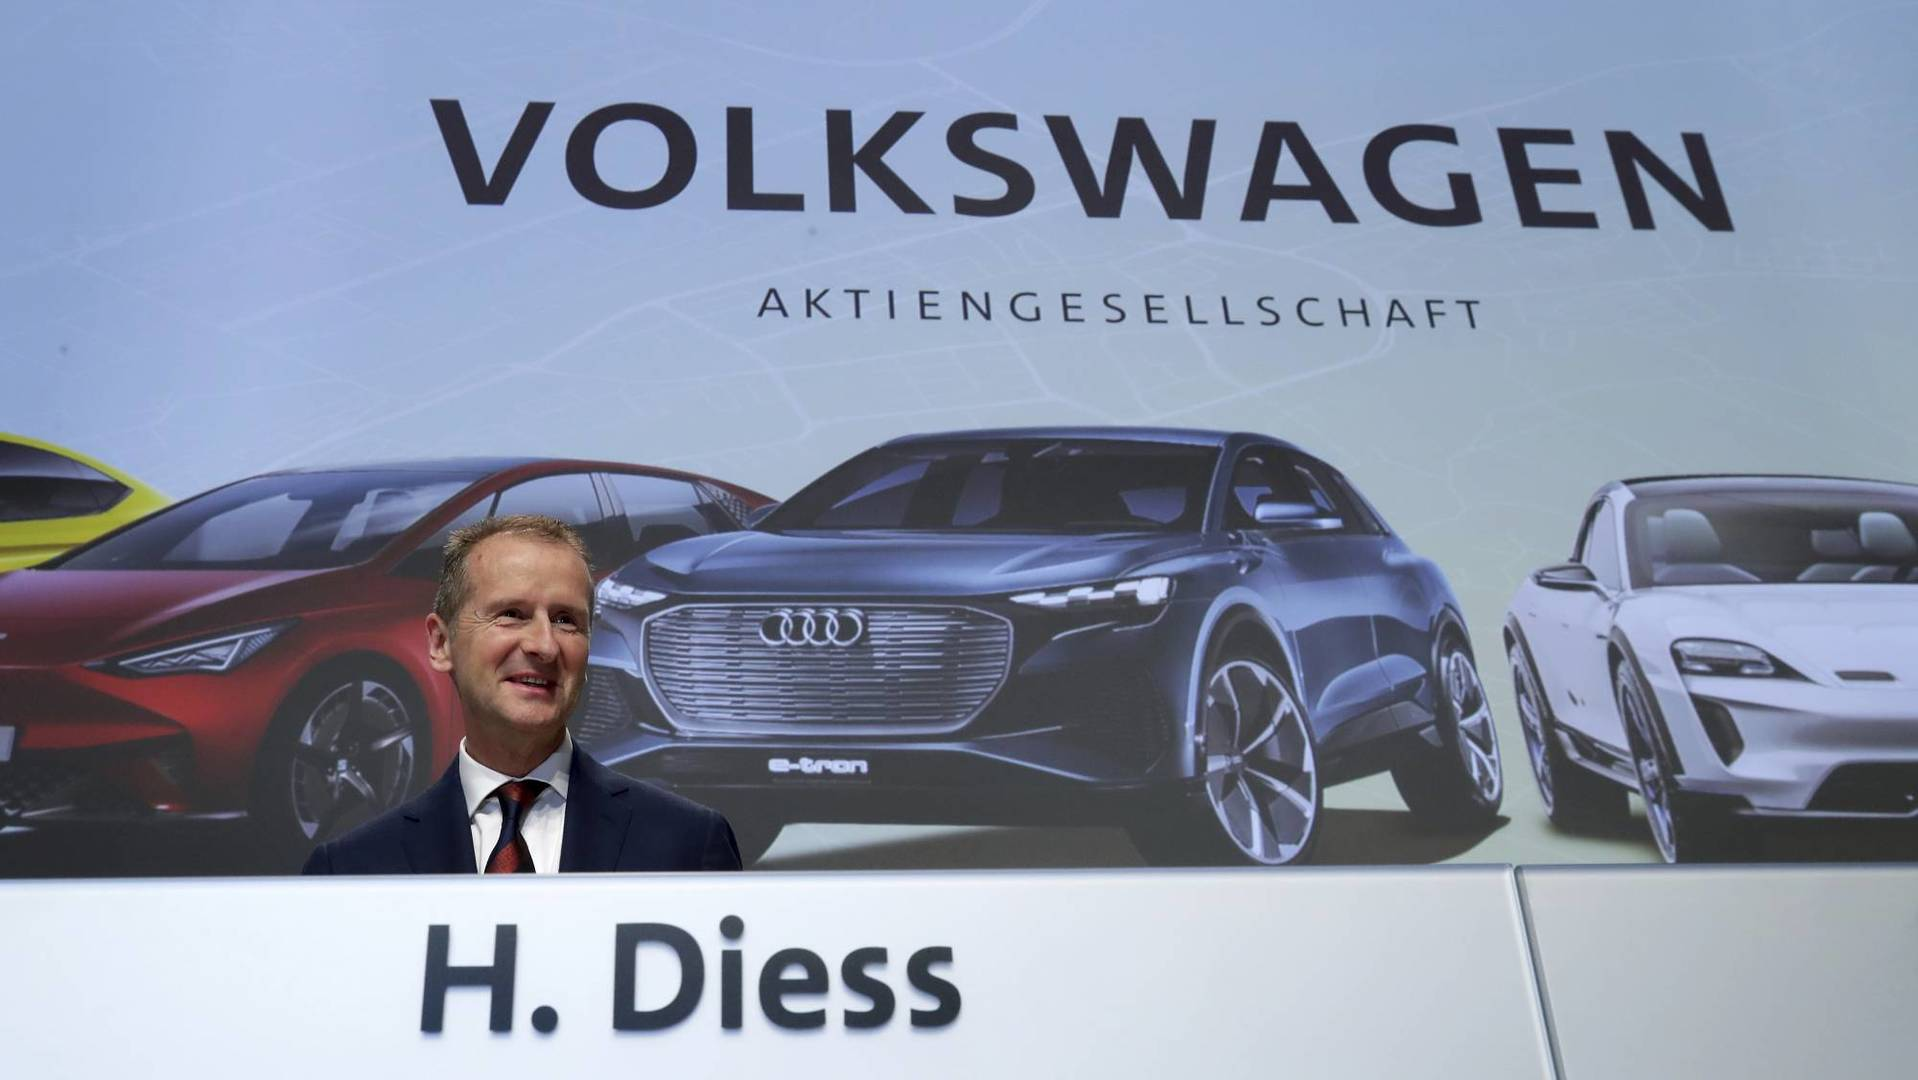 Herbert Diess, CEO of the Volkswagen stock company, arrives for the company's annual general meeting in Berlin, Germany, Tuesday, May 14, 2019. (AP Photo/Michael Sohn)